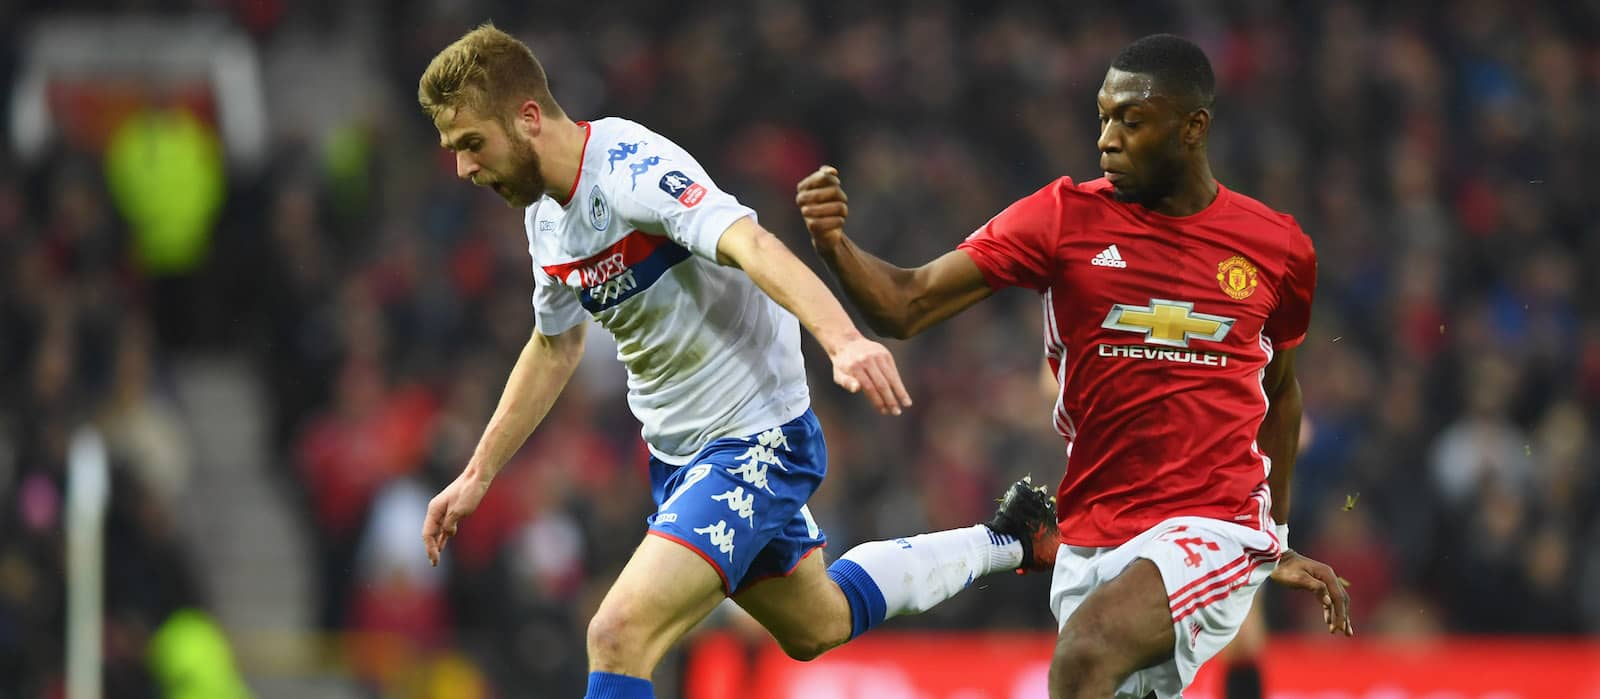 Timothy Fosu-Mensah optimistic about his recovery at Manchester United